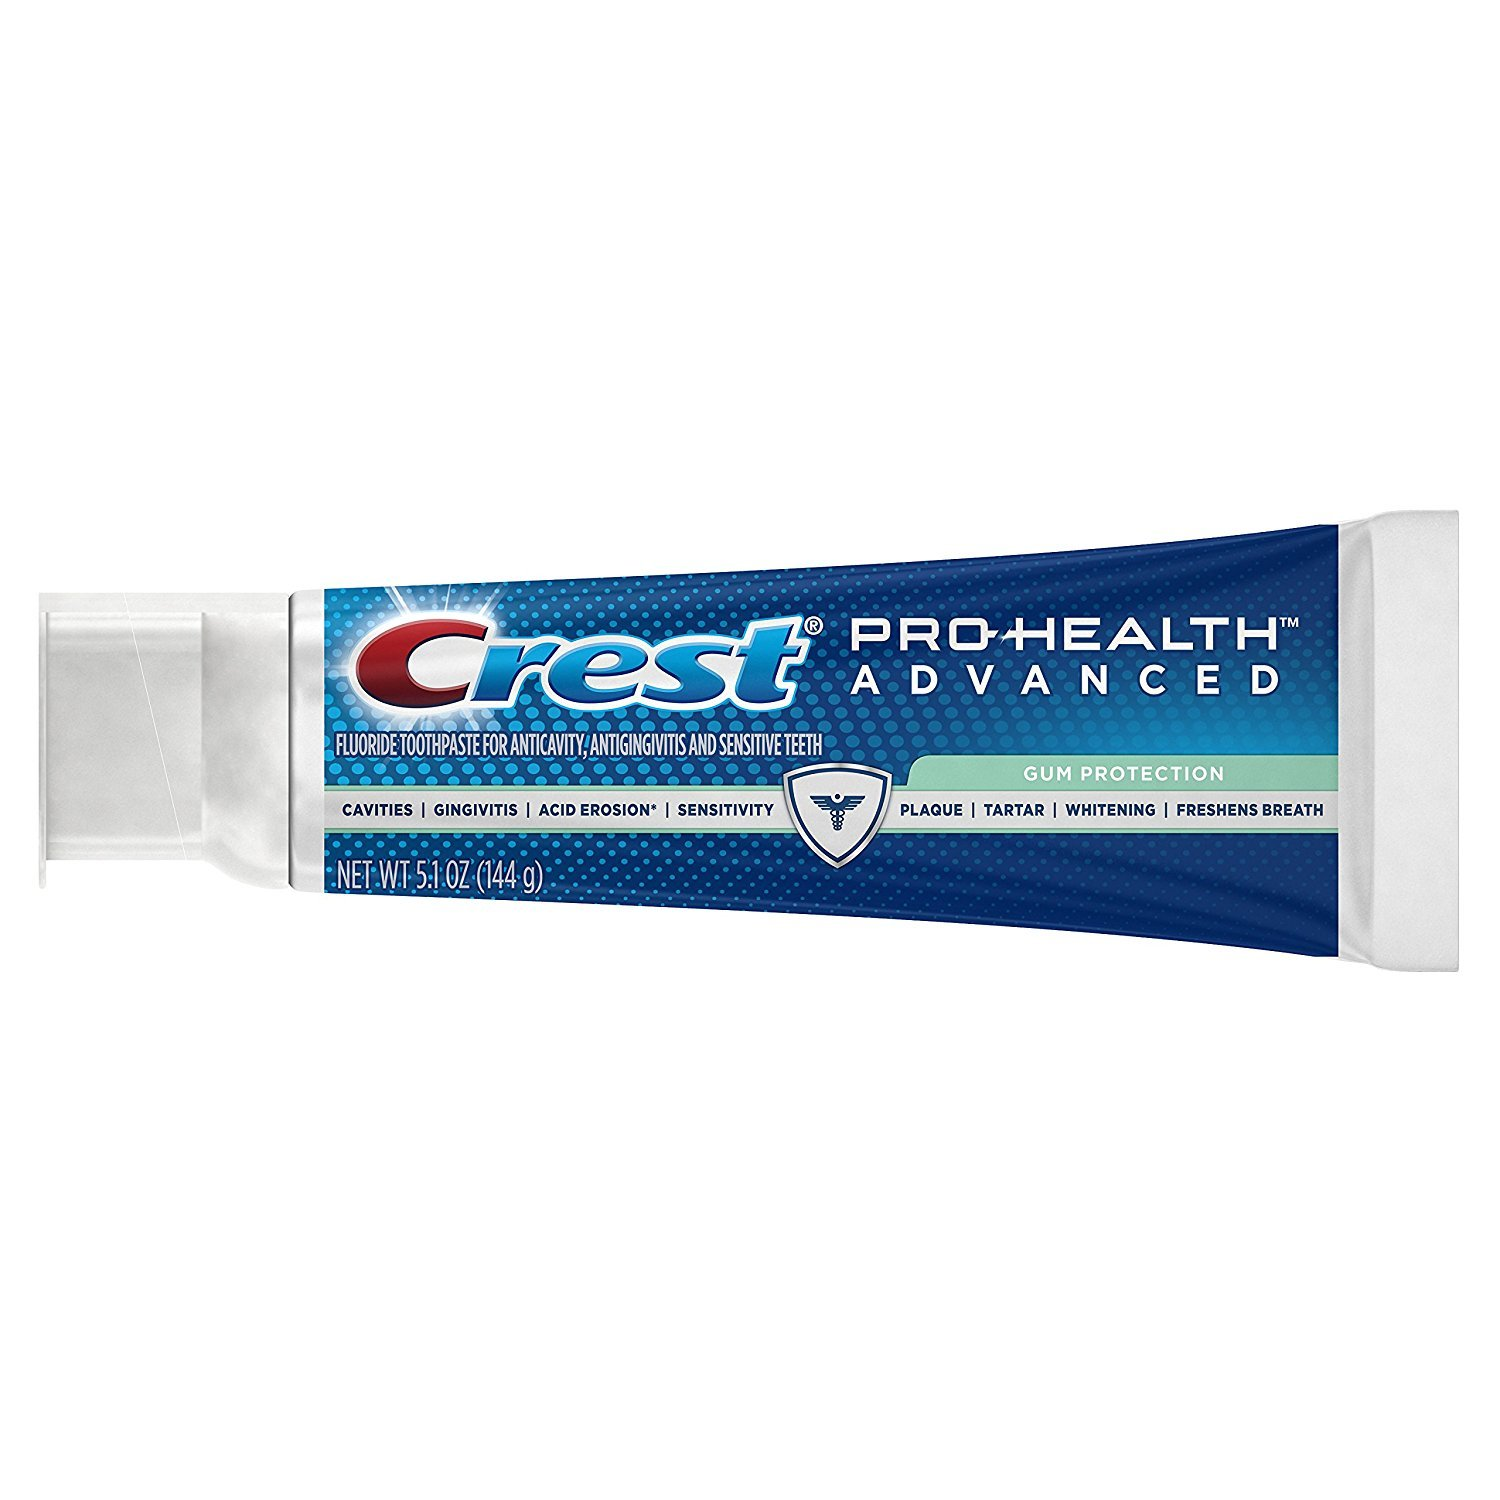 Crest Pro-Health Advanced Gum Protection Toothpaste, 5.1 oz, Triple pack by Crest (Image #2)